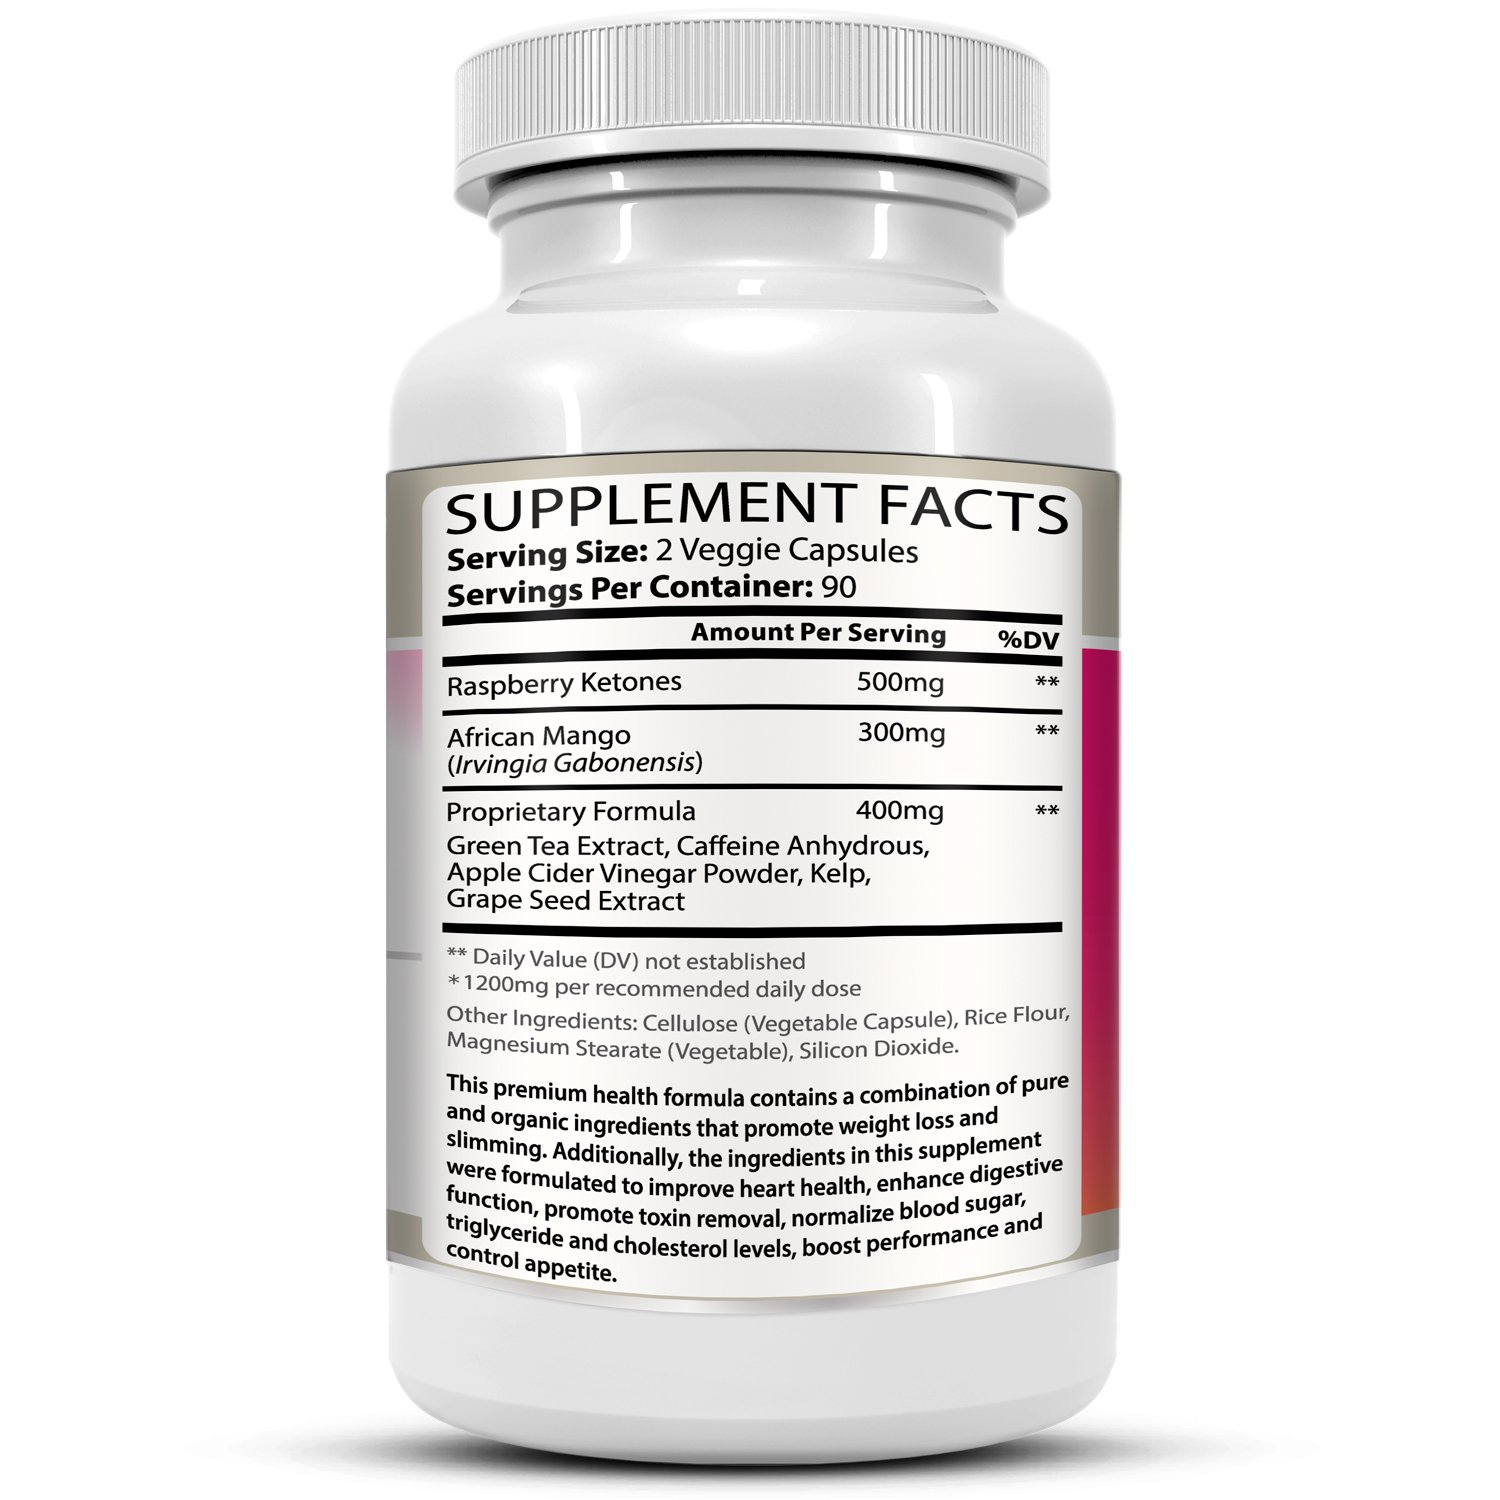 Raspberry Ketones Supreme Weight Loss & Slimming Formula for Adults. 1200mg Per Day. 180 All-Natural Capsules with Premium, Pure & Organic Ingredients. by Evergenics Health and Personal Care (Image #8)